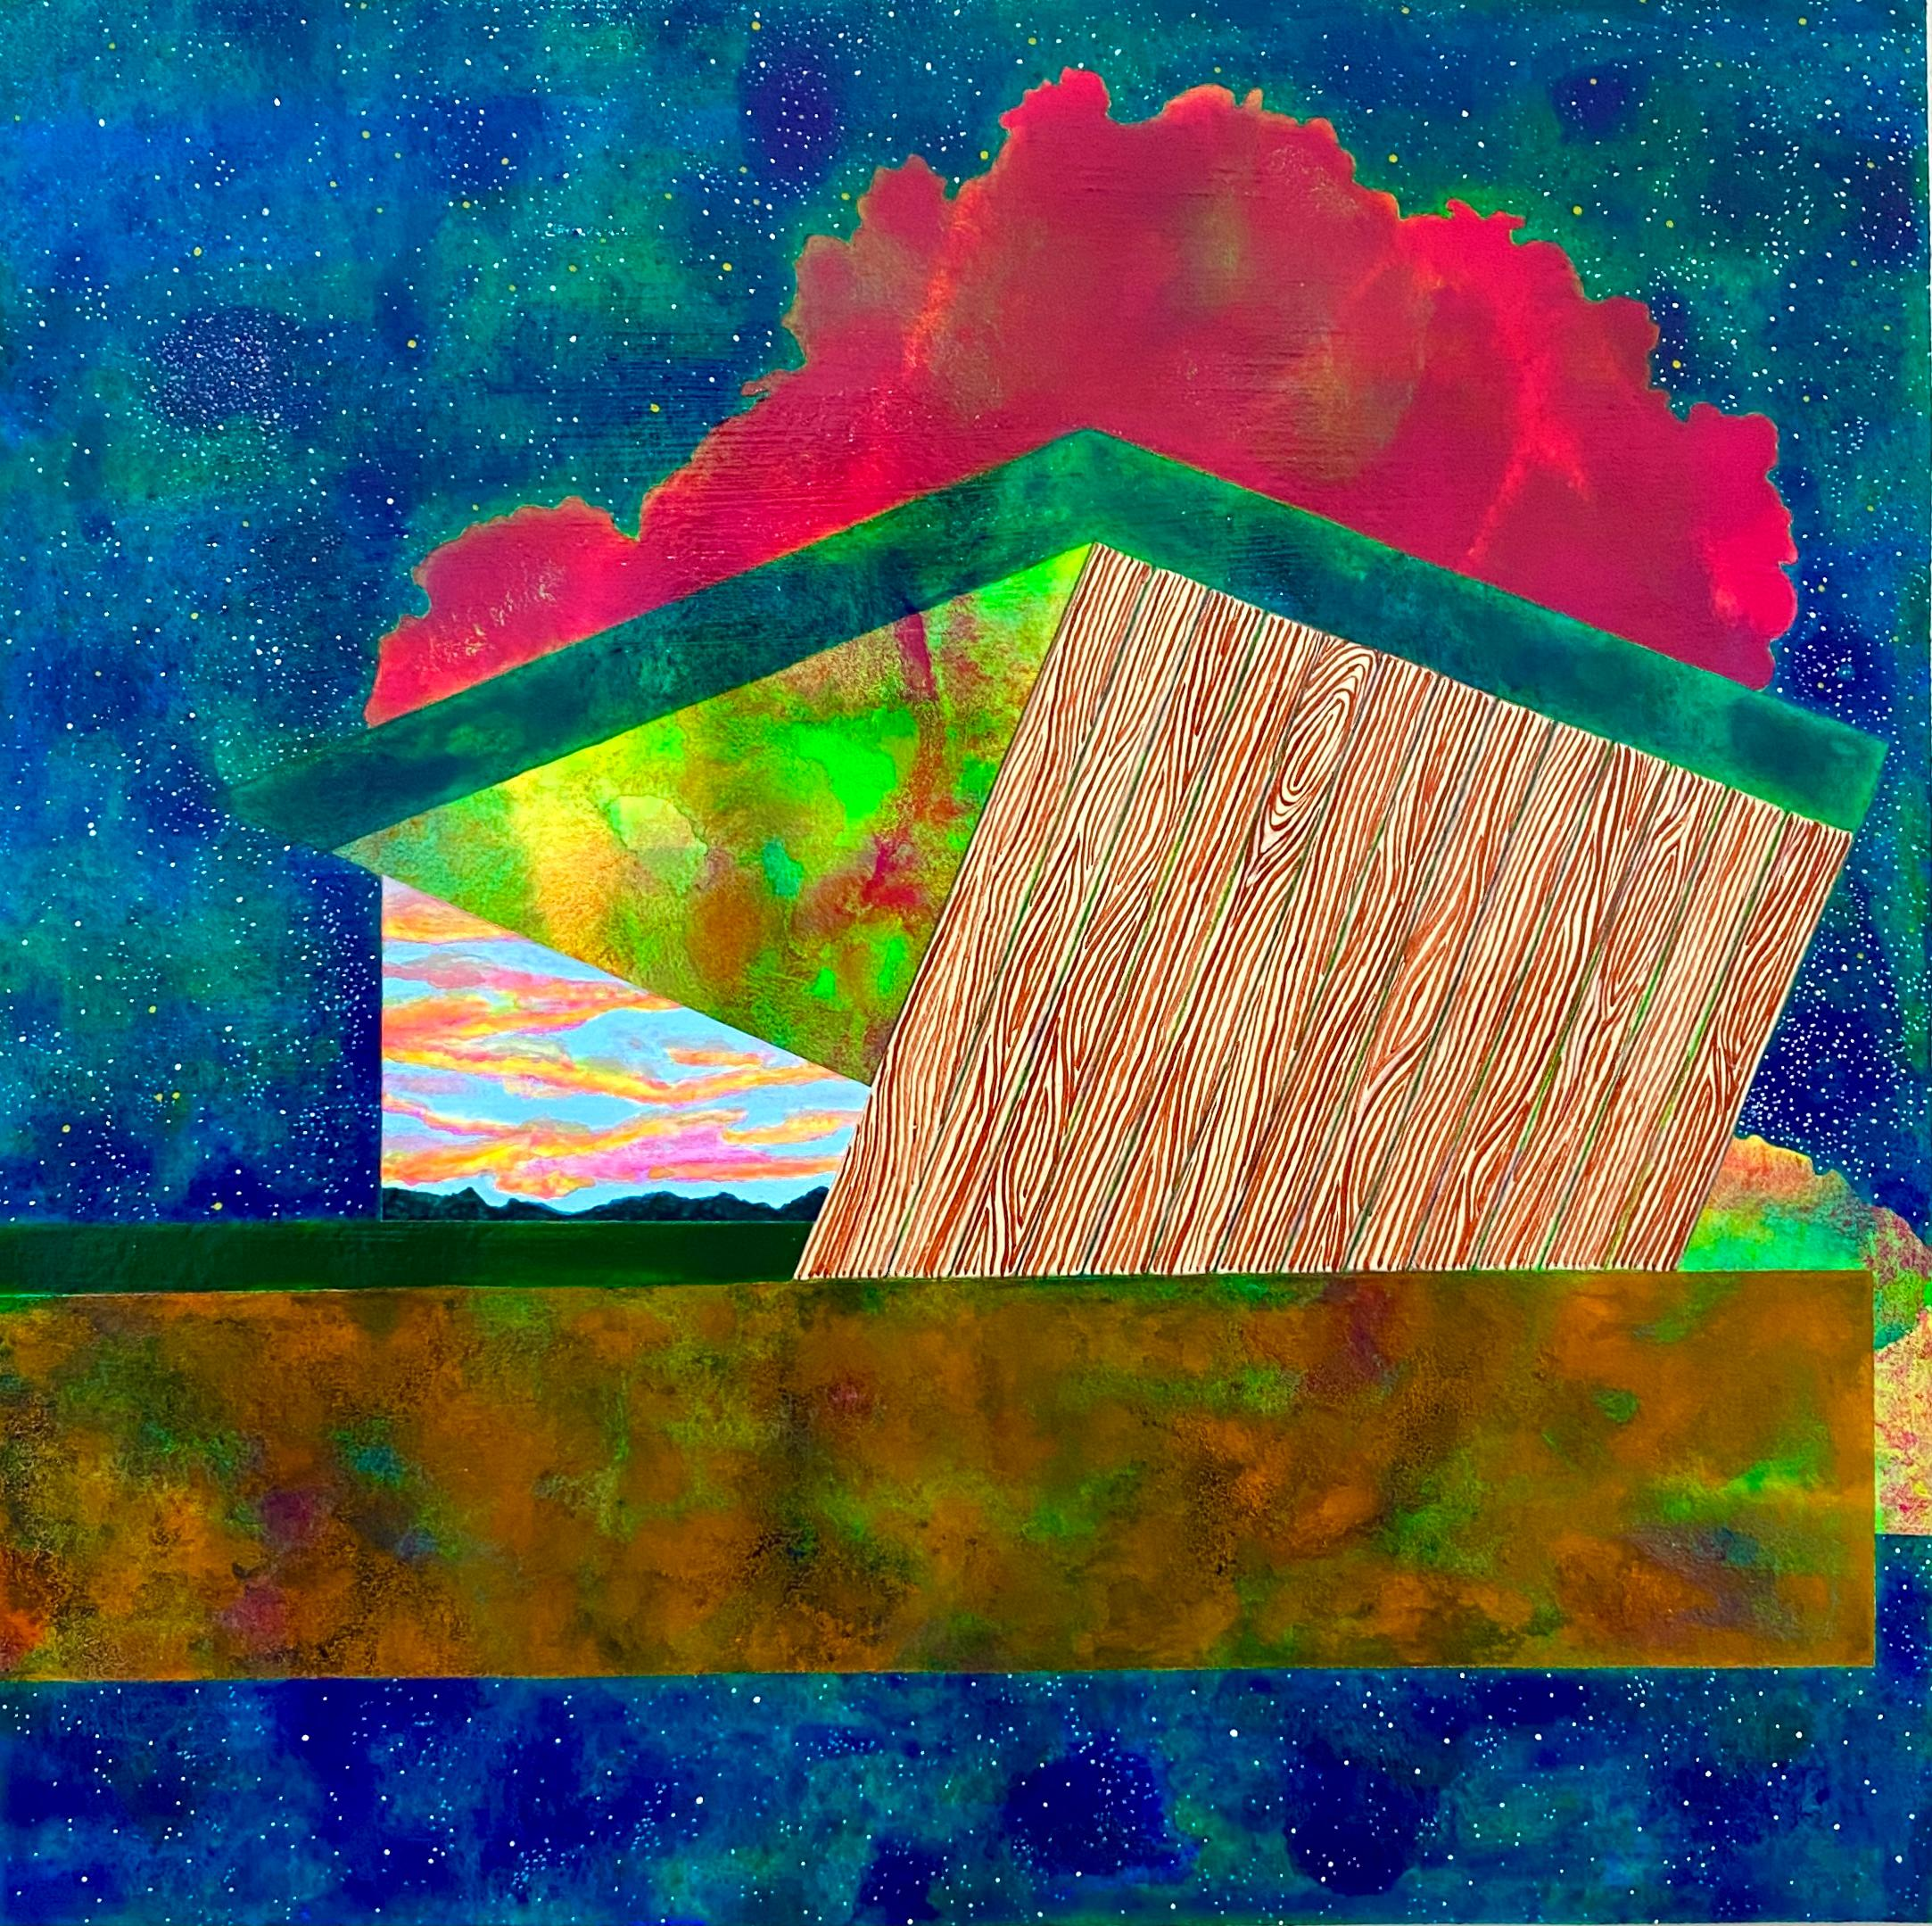 Stargazer, bright surrealistic painting of architecture against sky, neon colors